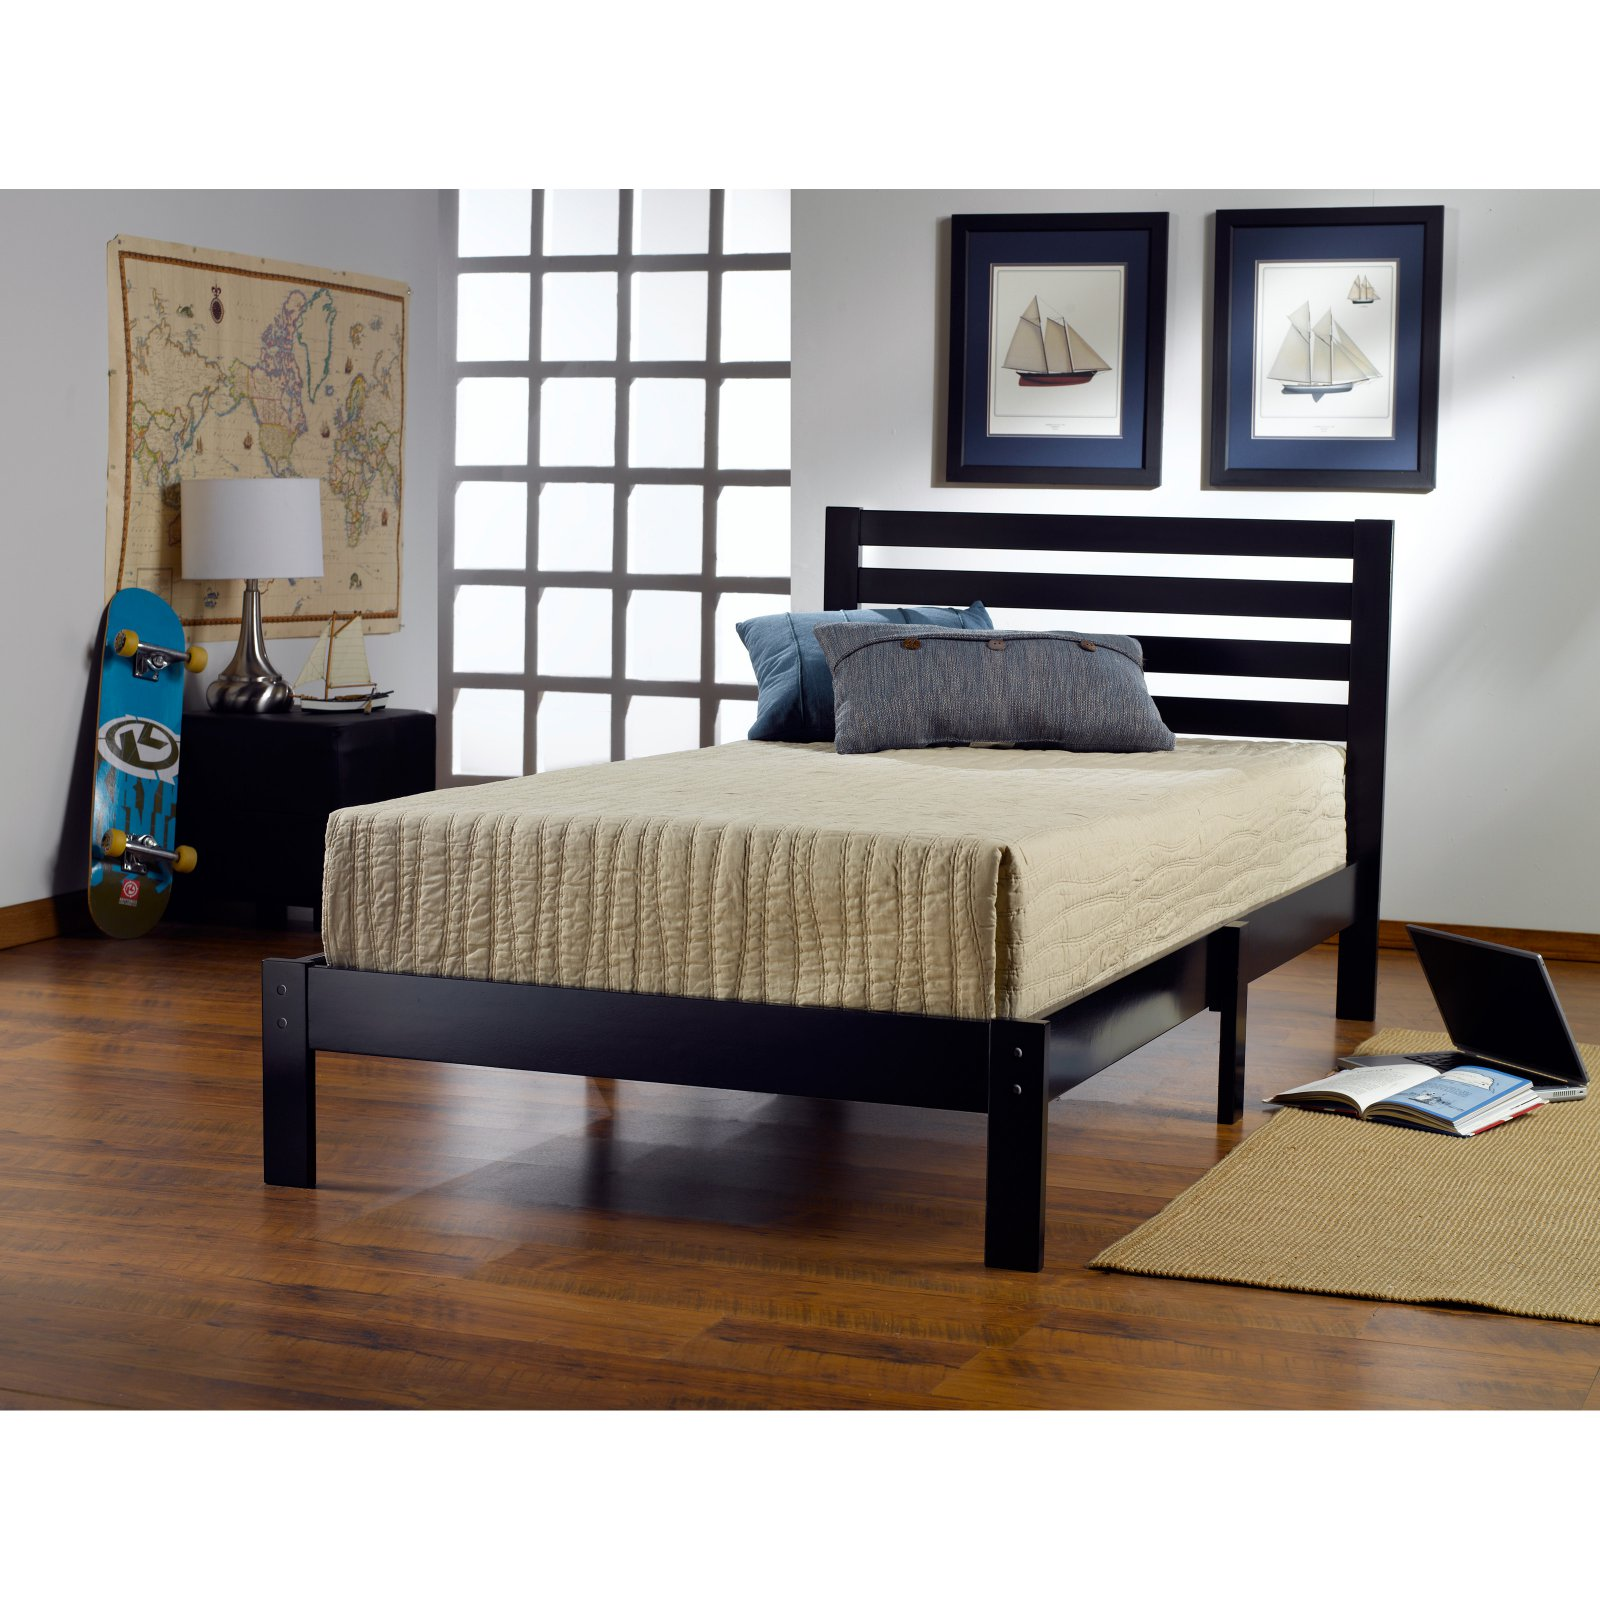 Aiden Twin Bed, Black